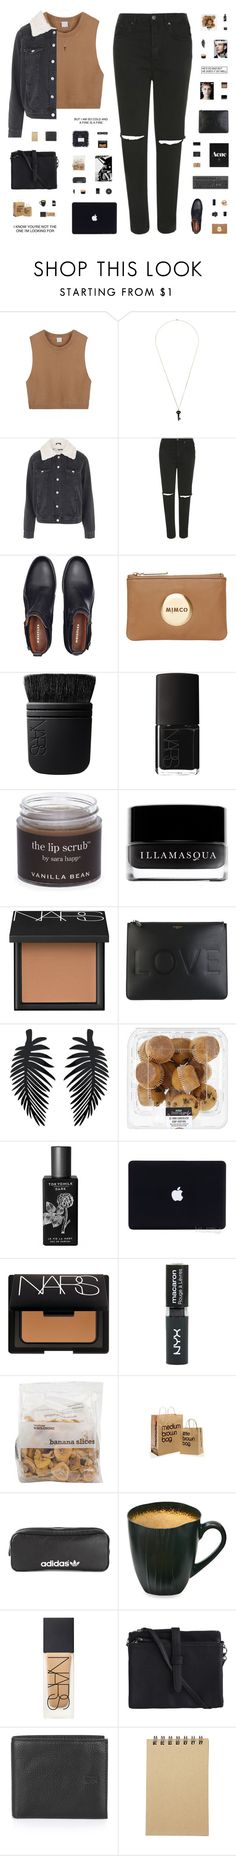 """""""YOU'RE THE ONE THAT I WANT"""" by c-hristinep ❤ liked on Polyvore featuring Kristin Hanson, Topshop, Poketo, Eos, Mimco, NARS Cosmetics, Sara Happ, Illamasqua, Givenchy and TokyoMilk"""